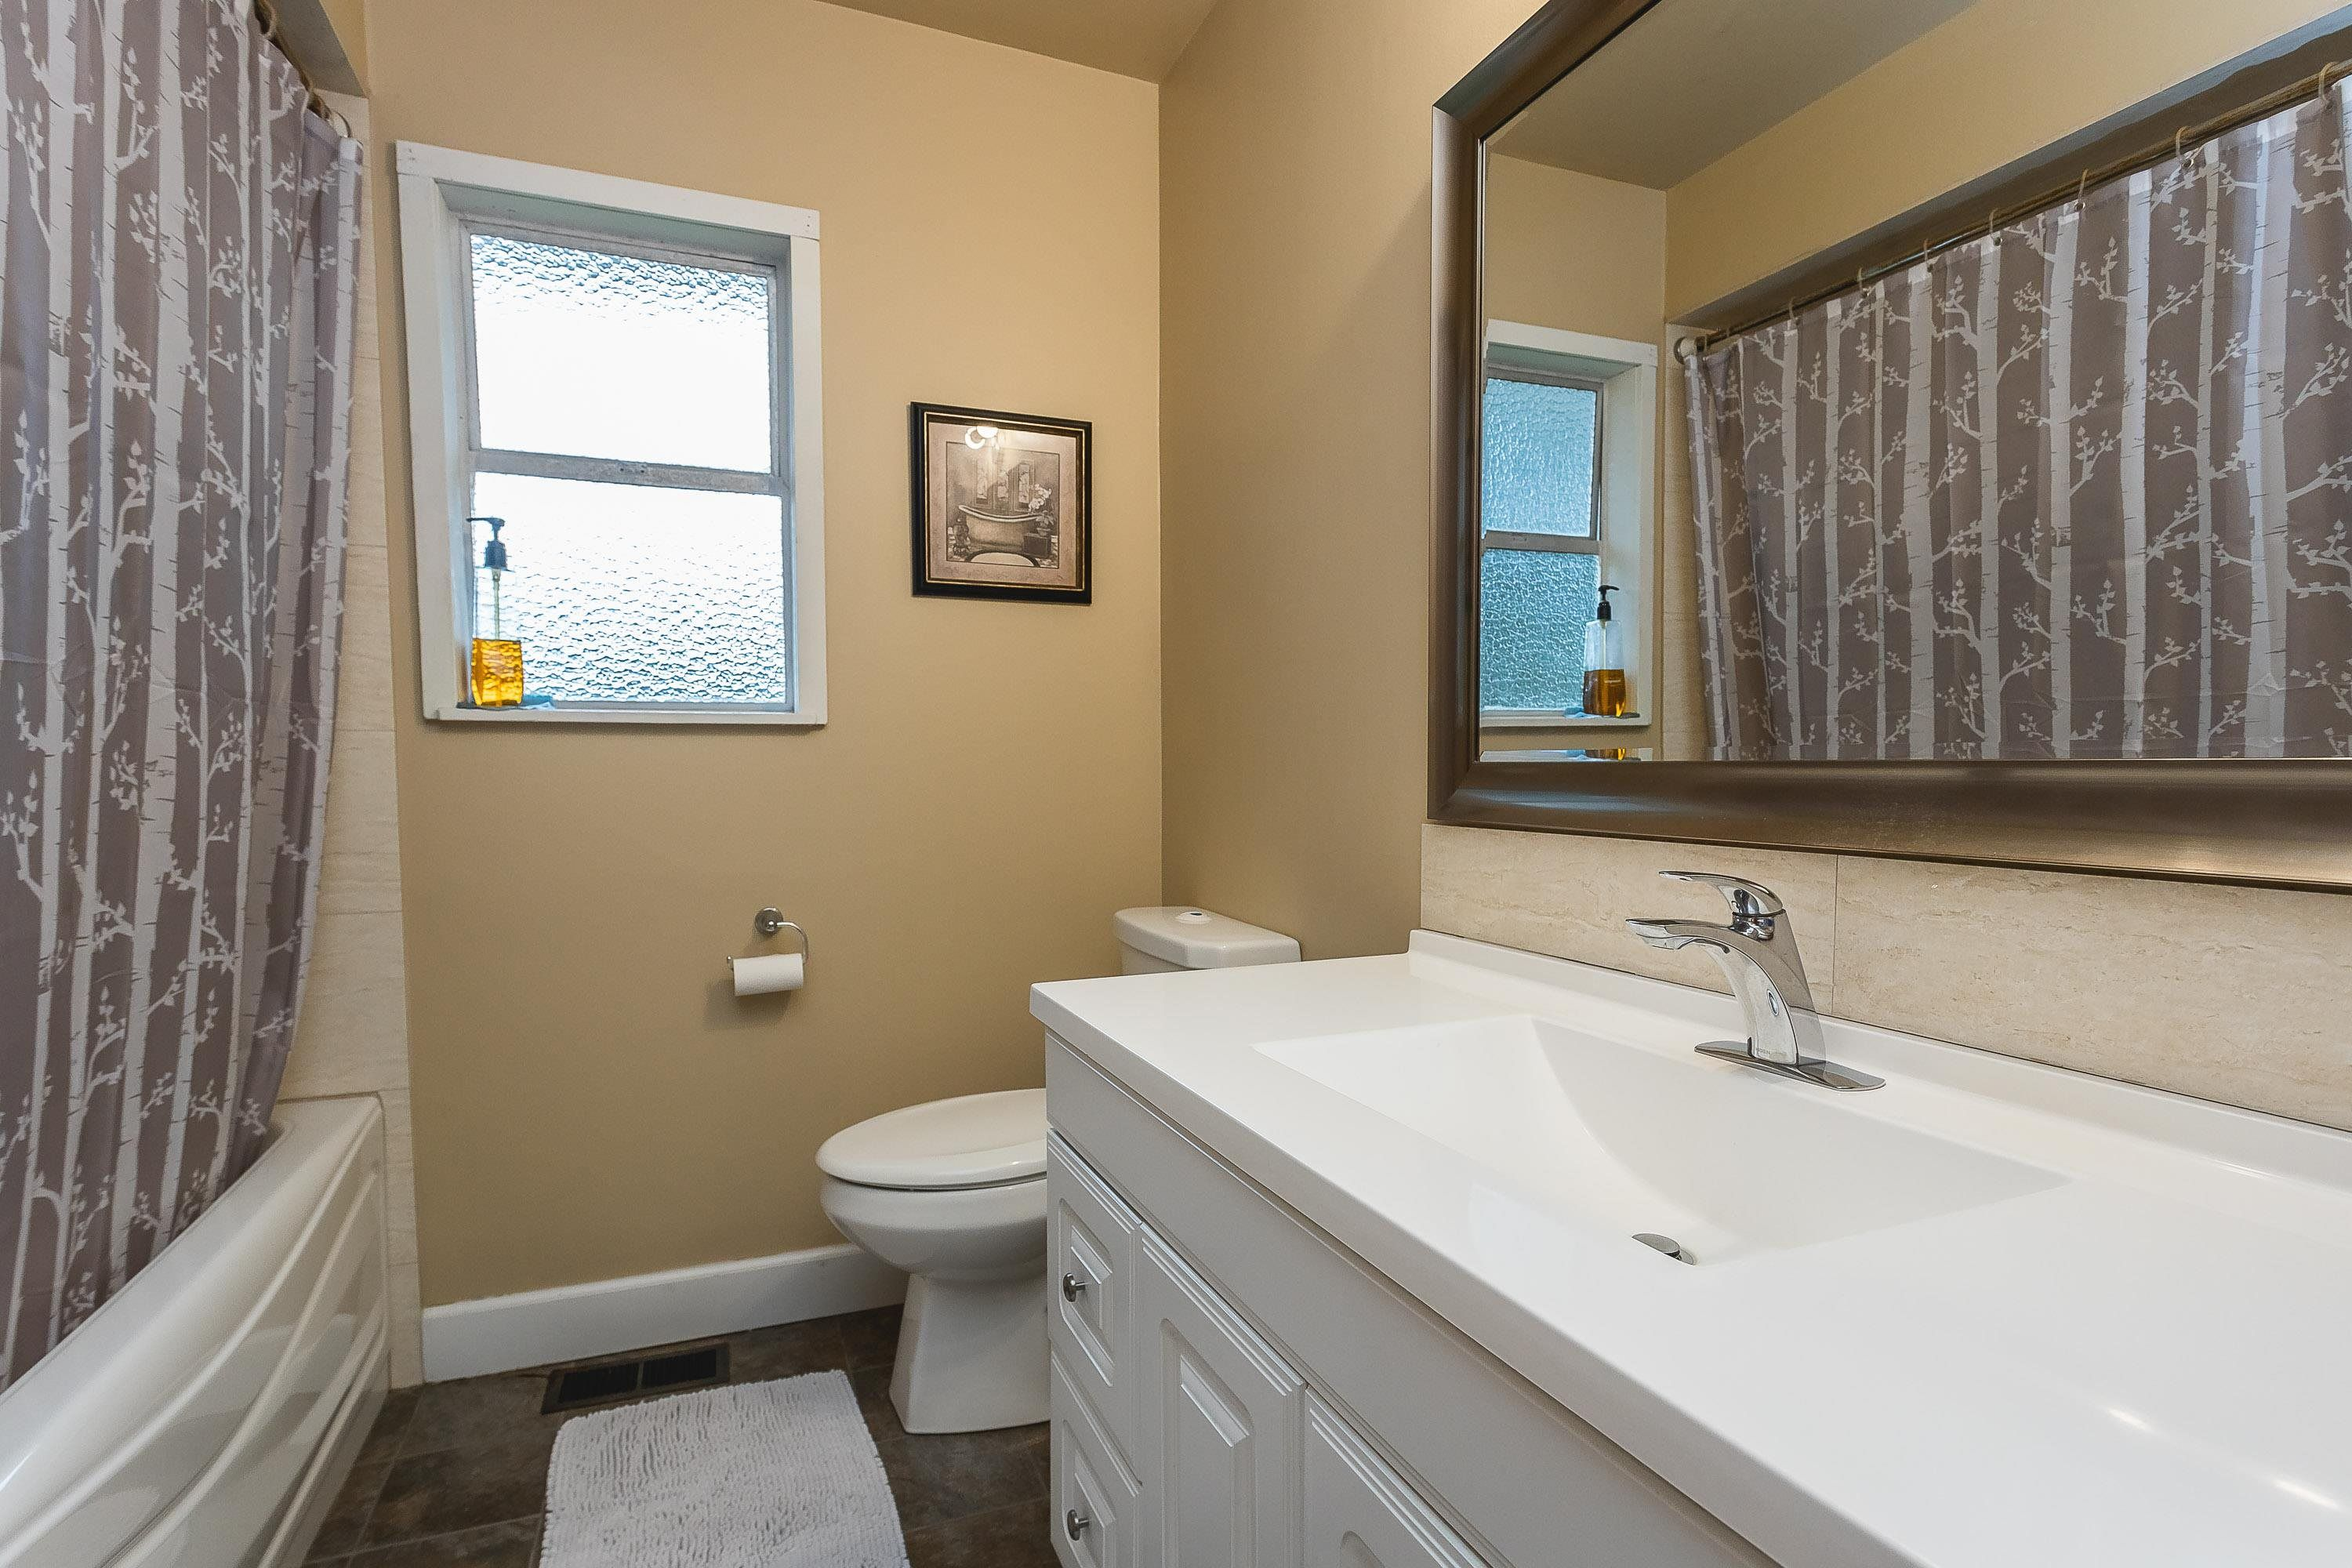 Photo 5: Photos: 3260 ULSTER Street in Port Coquitlam: Lincoln Park PQ House for sale : MLS®# R2613283